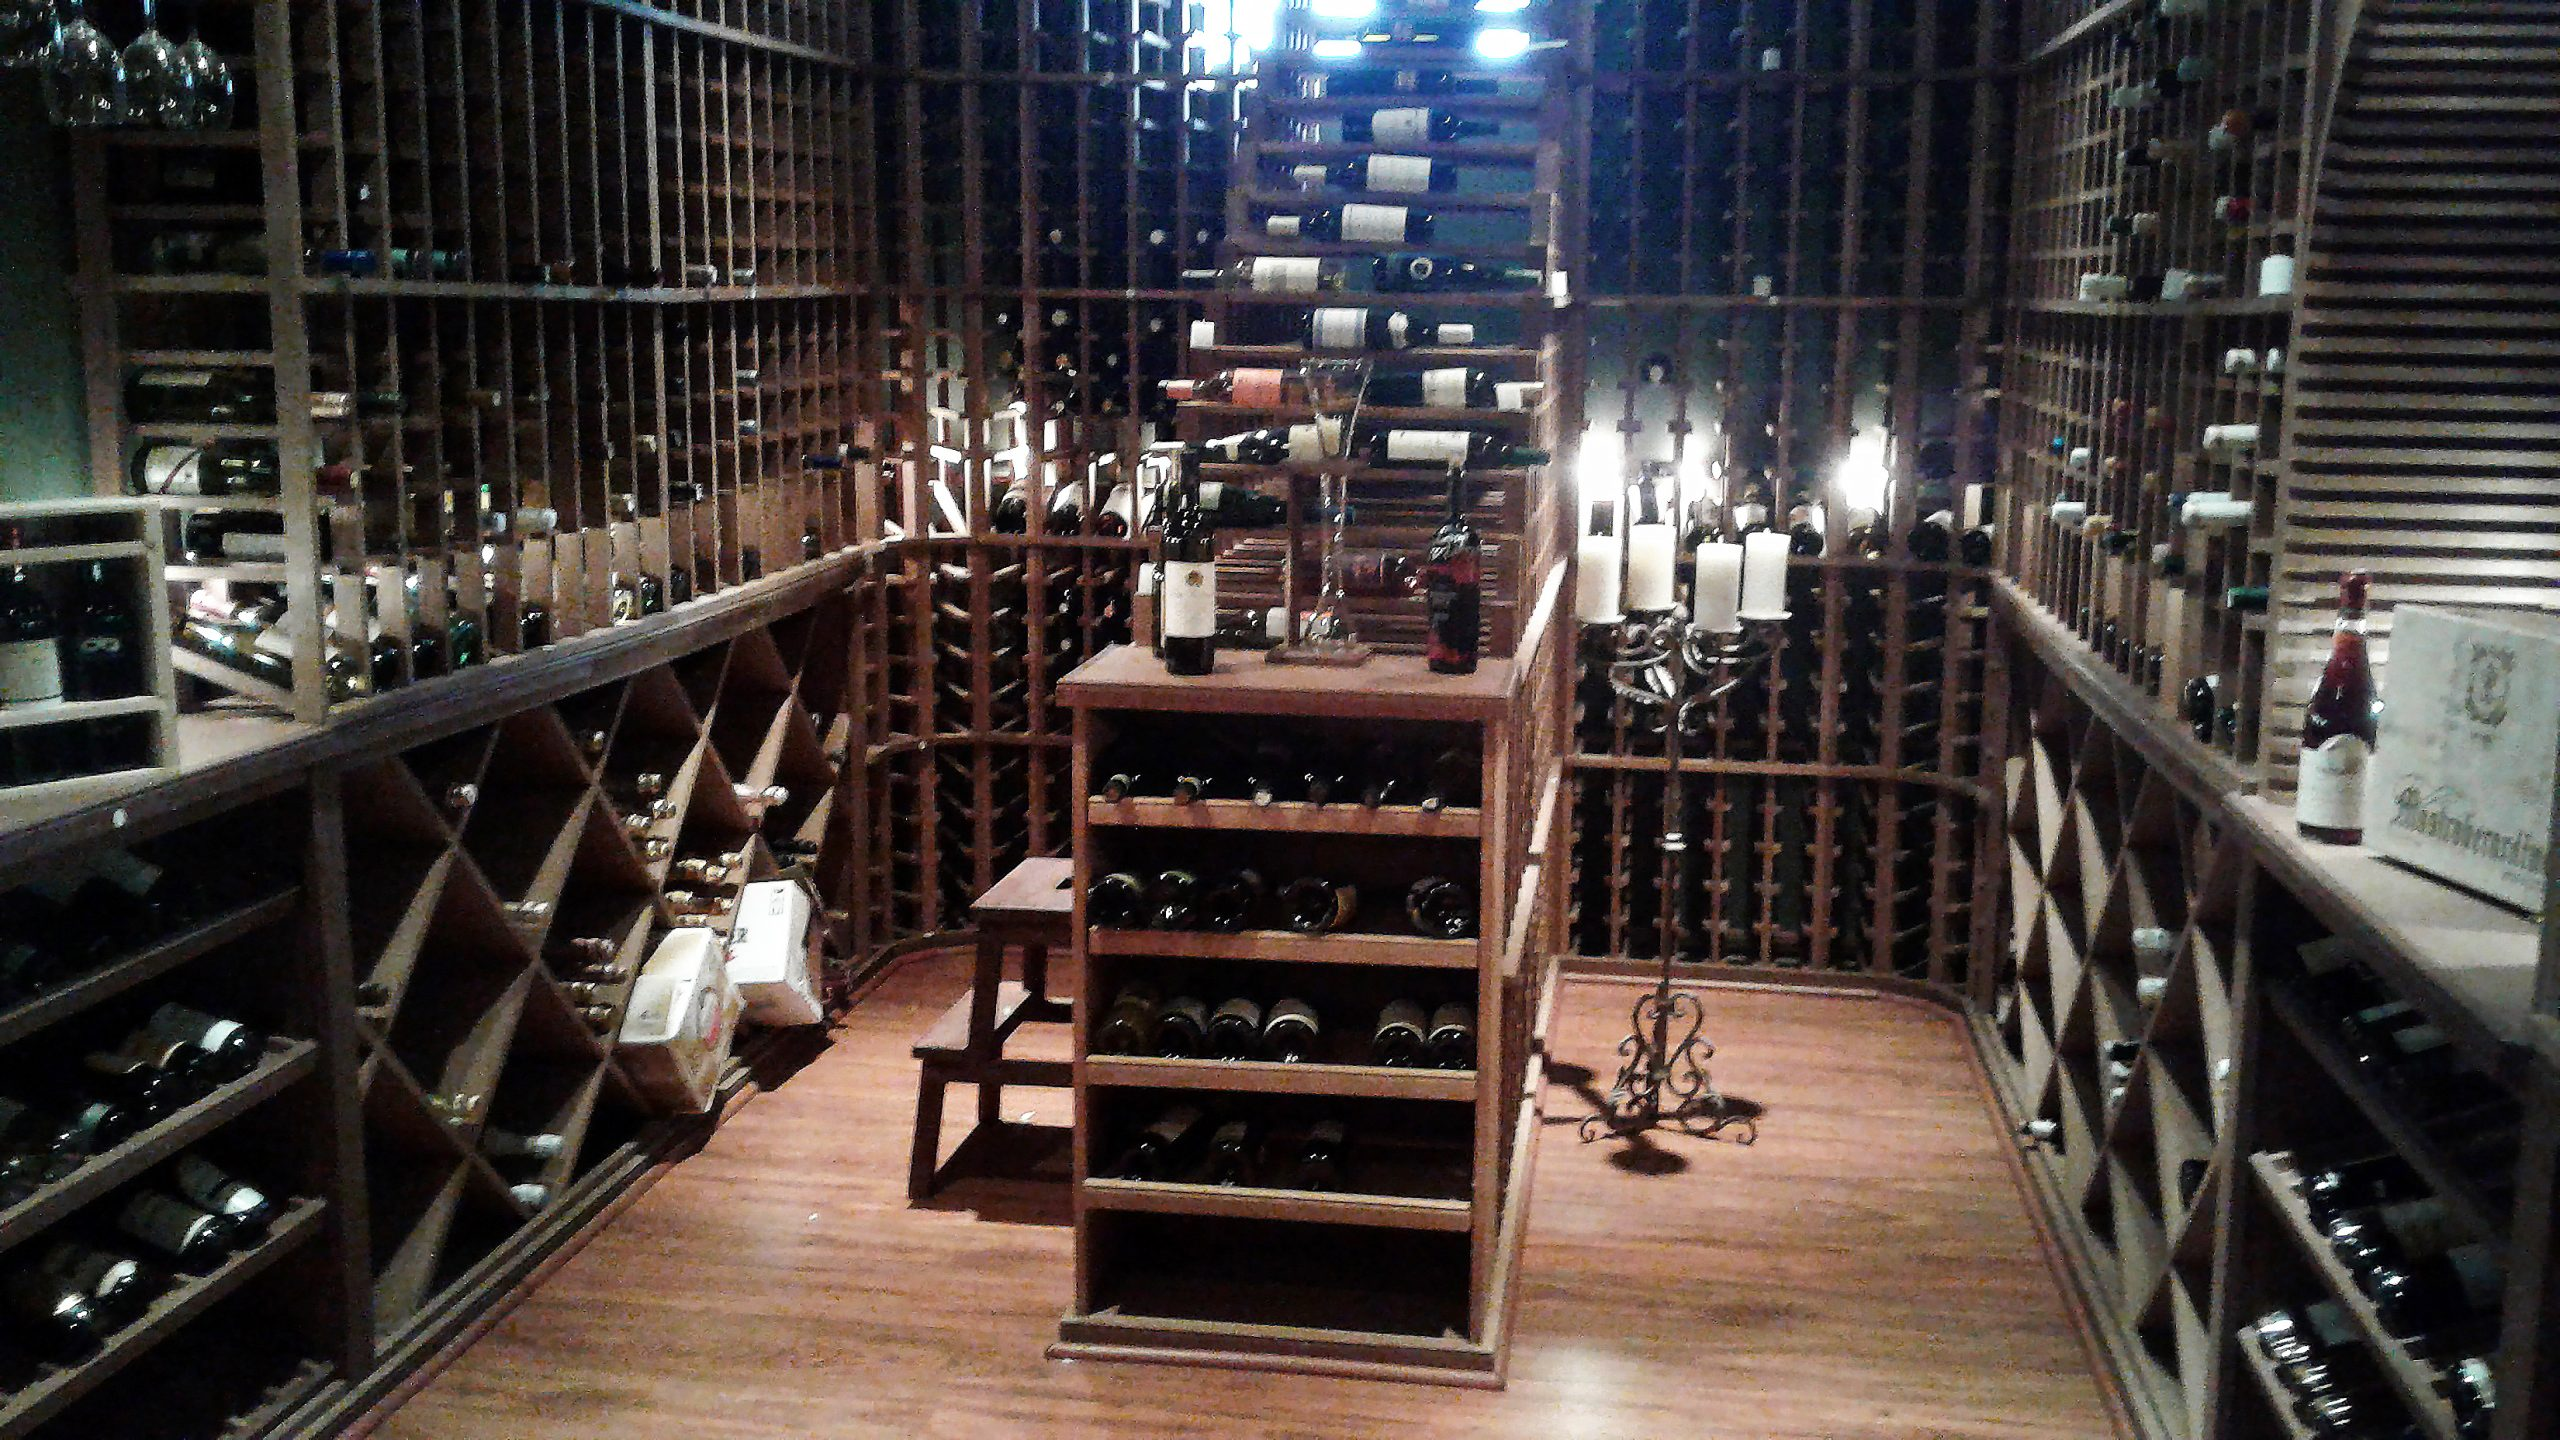 The wine cellar of the Inn at Thorn Hill, located in Jackson, New Hampshire